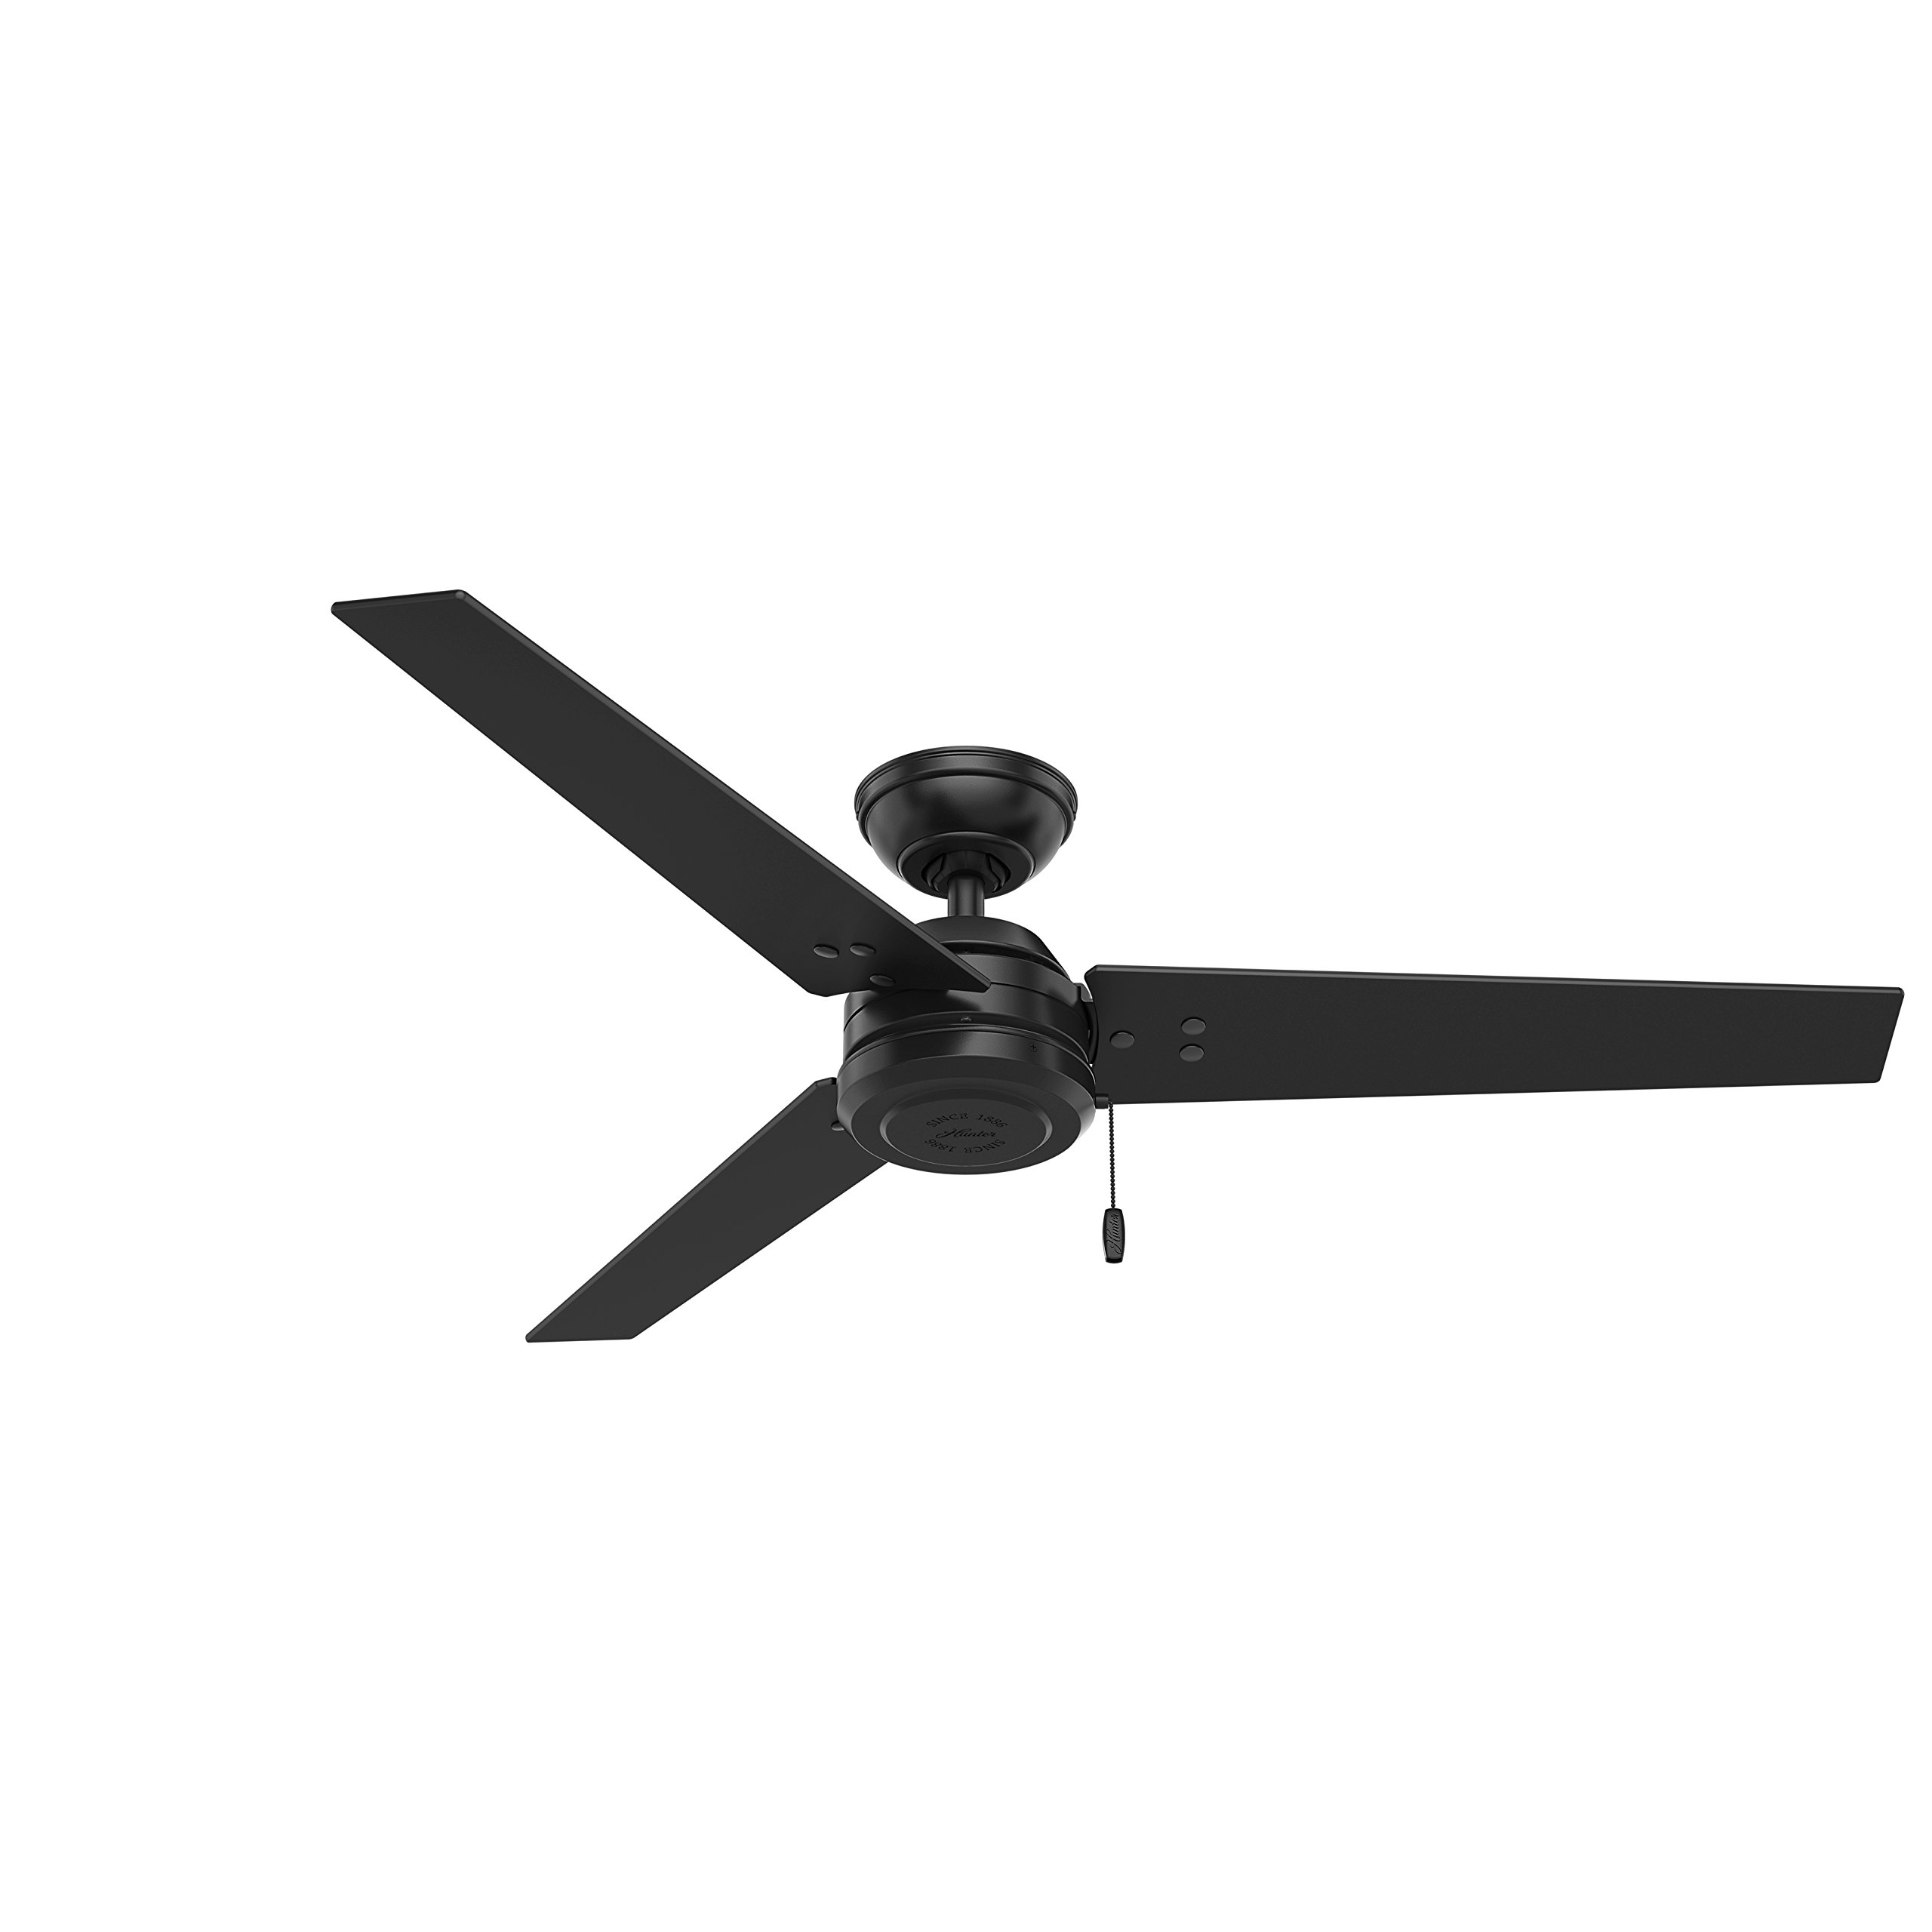 Hunter Indoor / Outdoor Ceiling Fan, with pull chain control - Cassius 52 inch, Black, 59264 by Hunter Fan Company